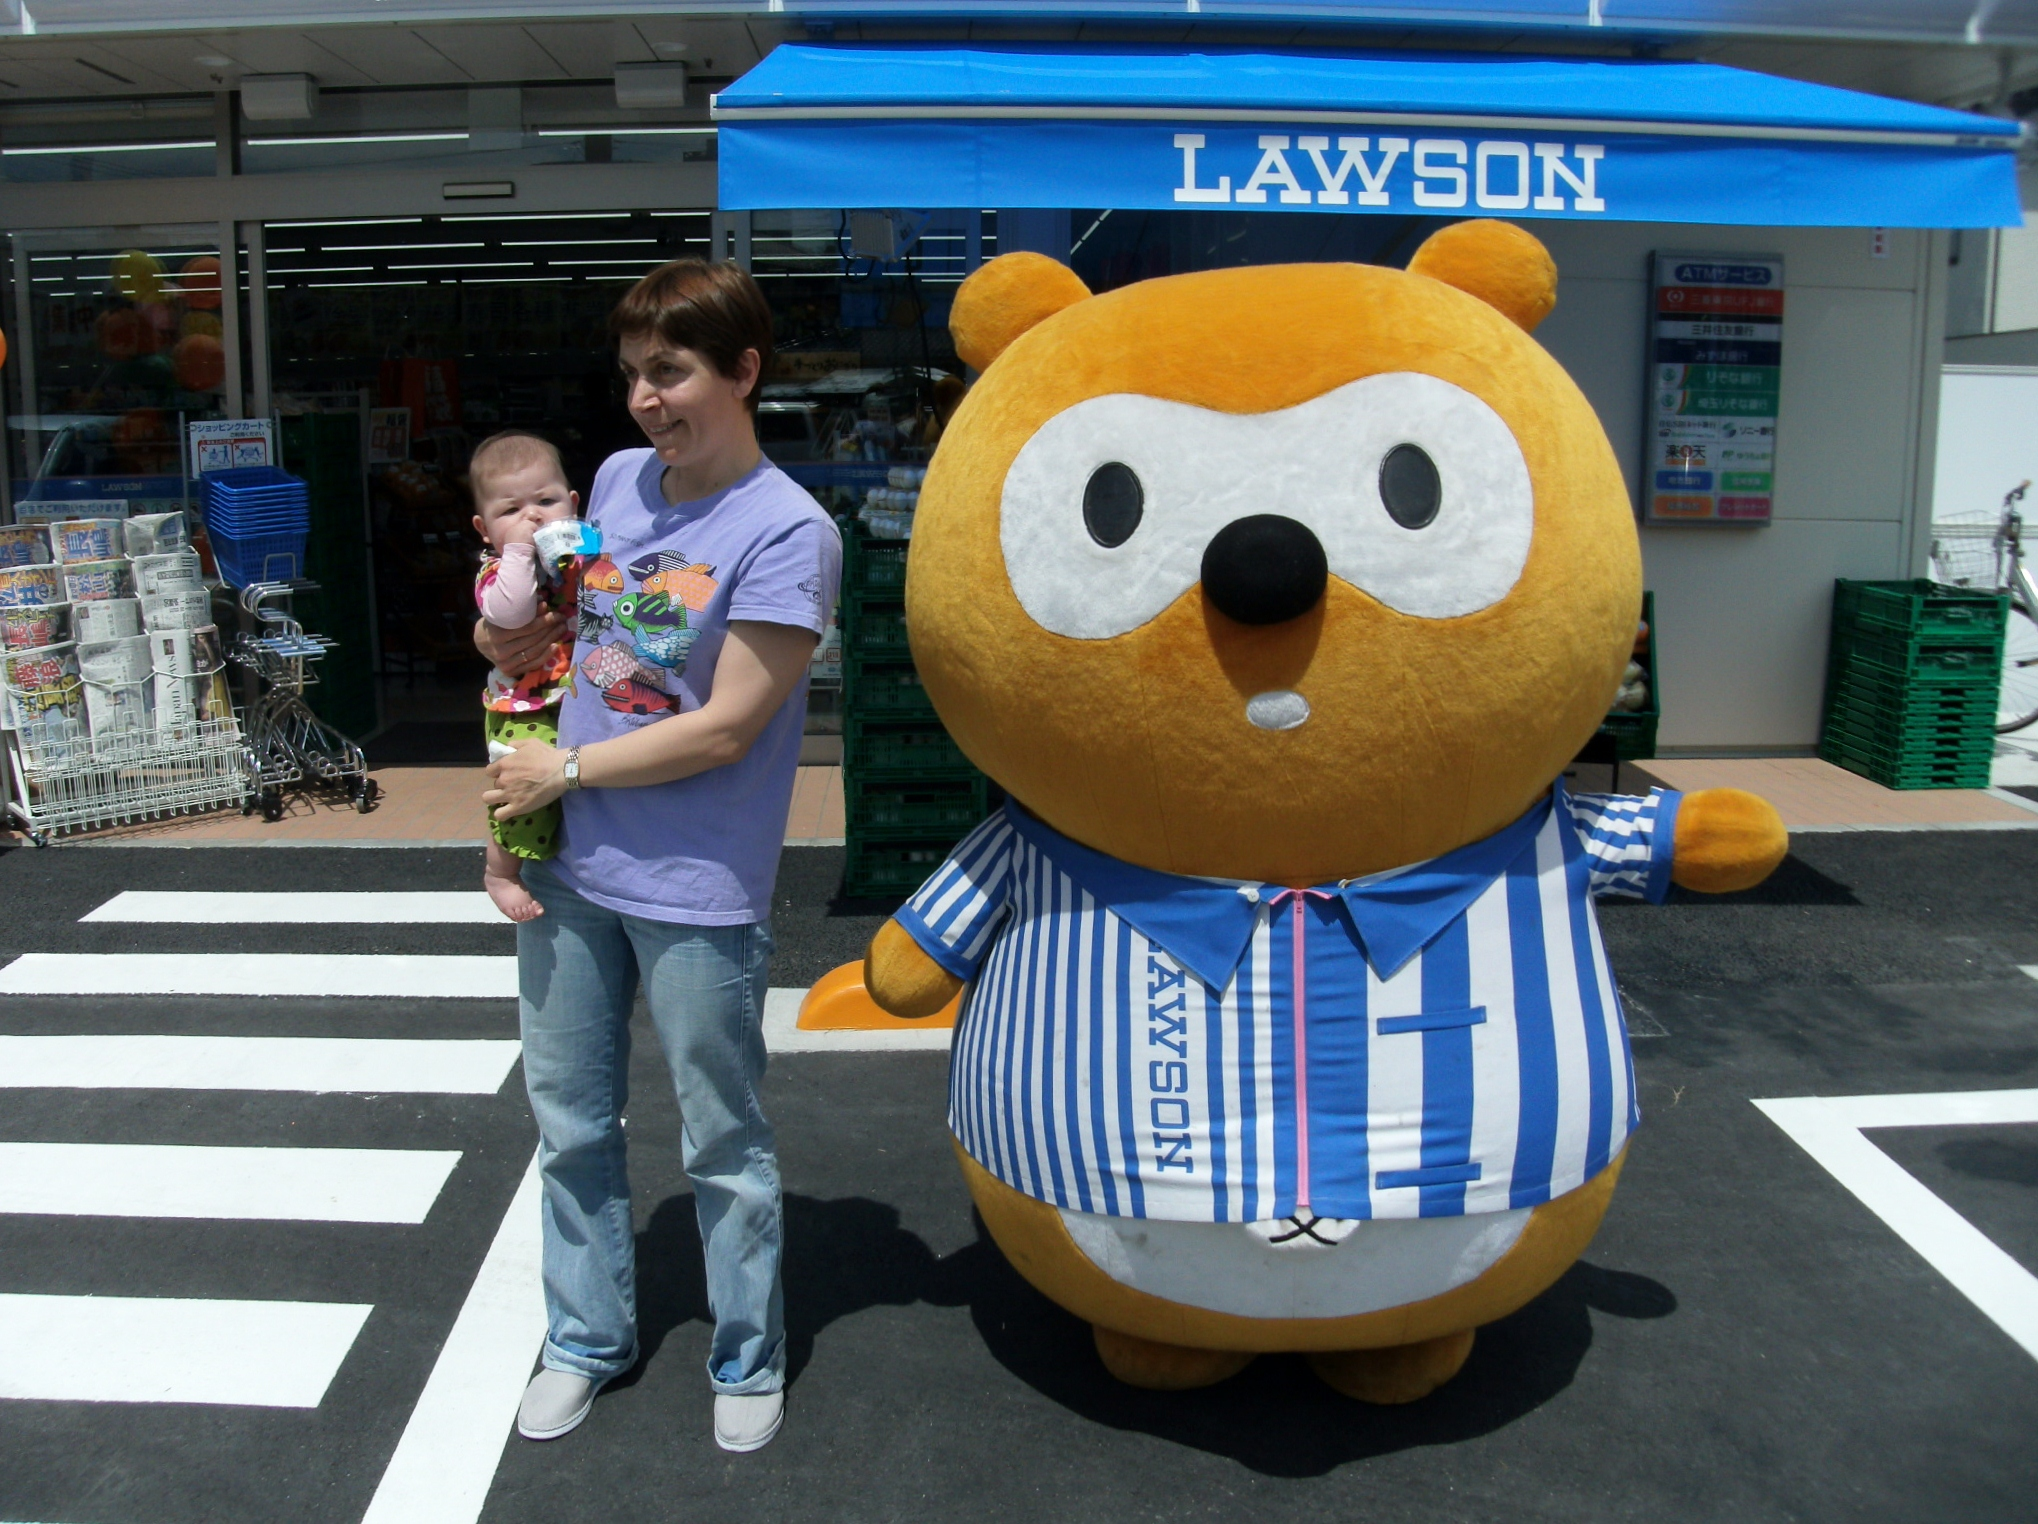 http://www.lawson.co.jp/ponta/